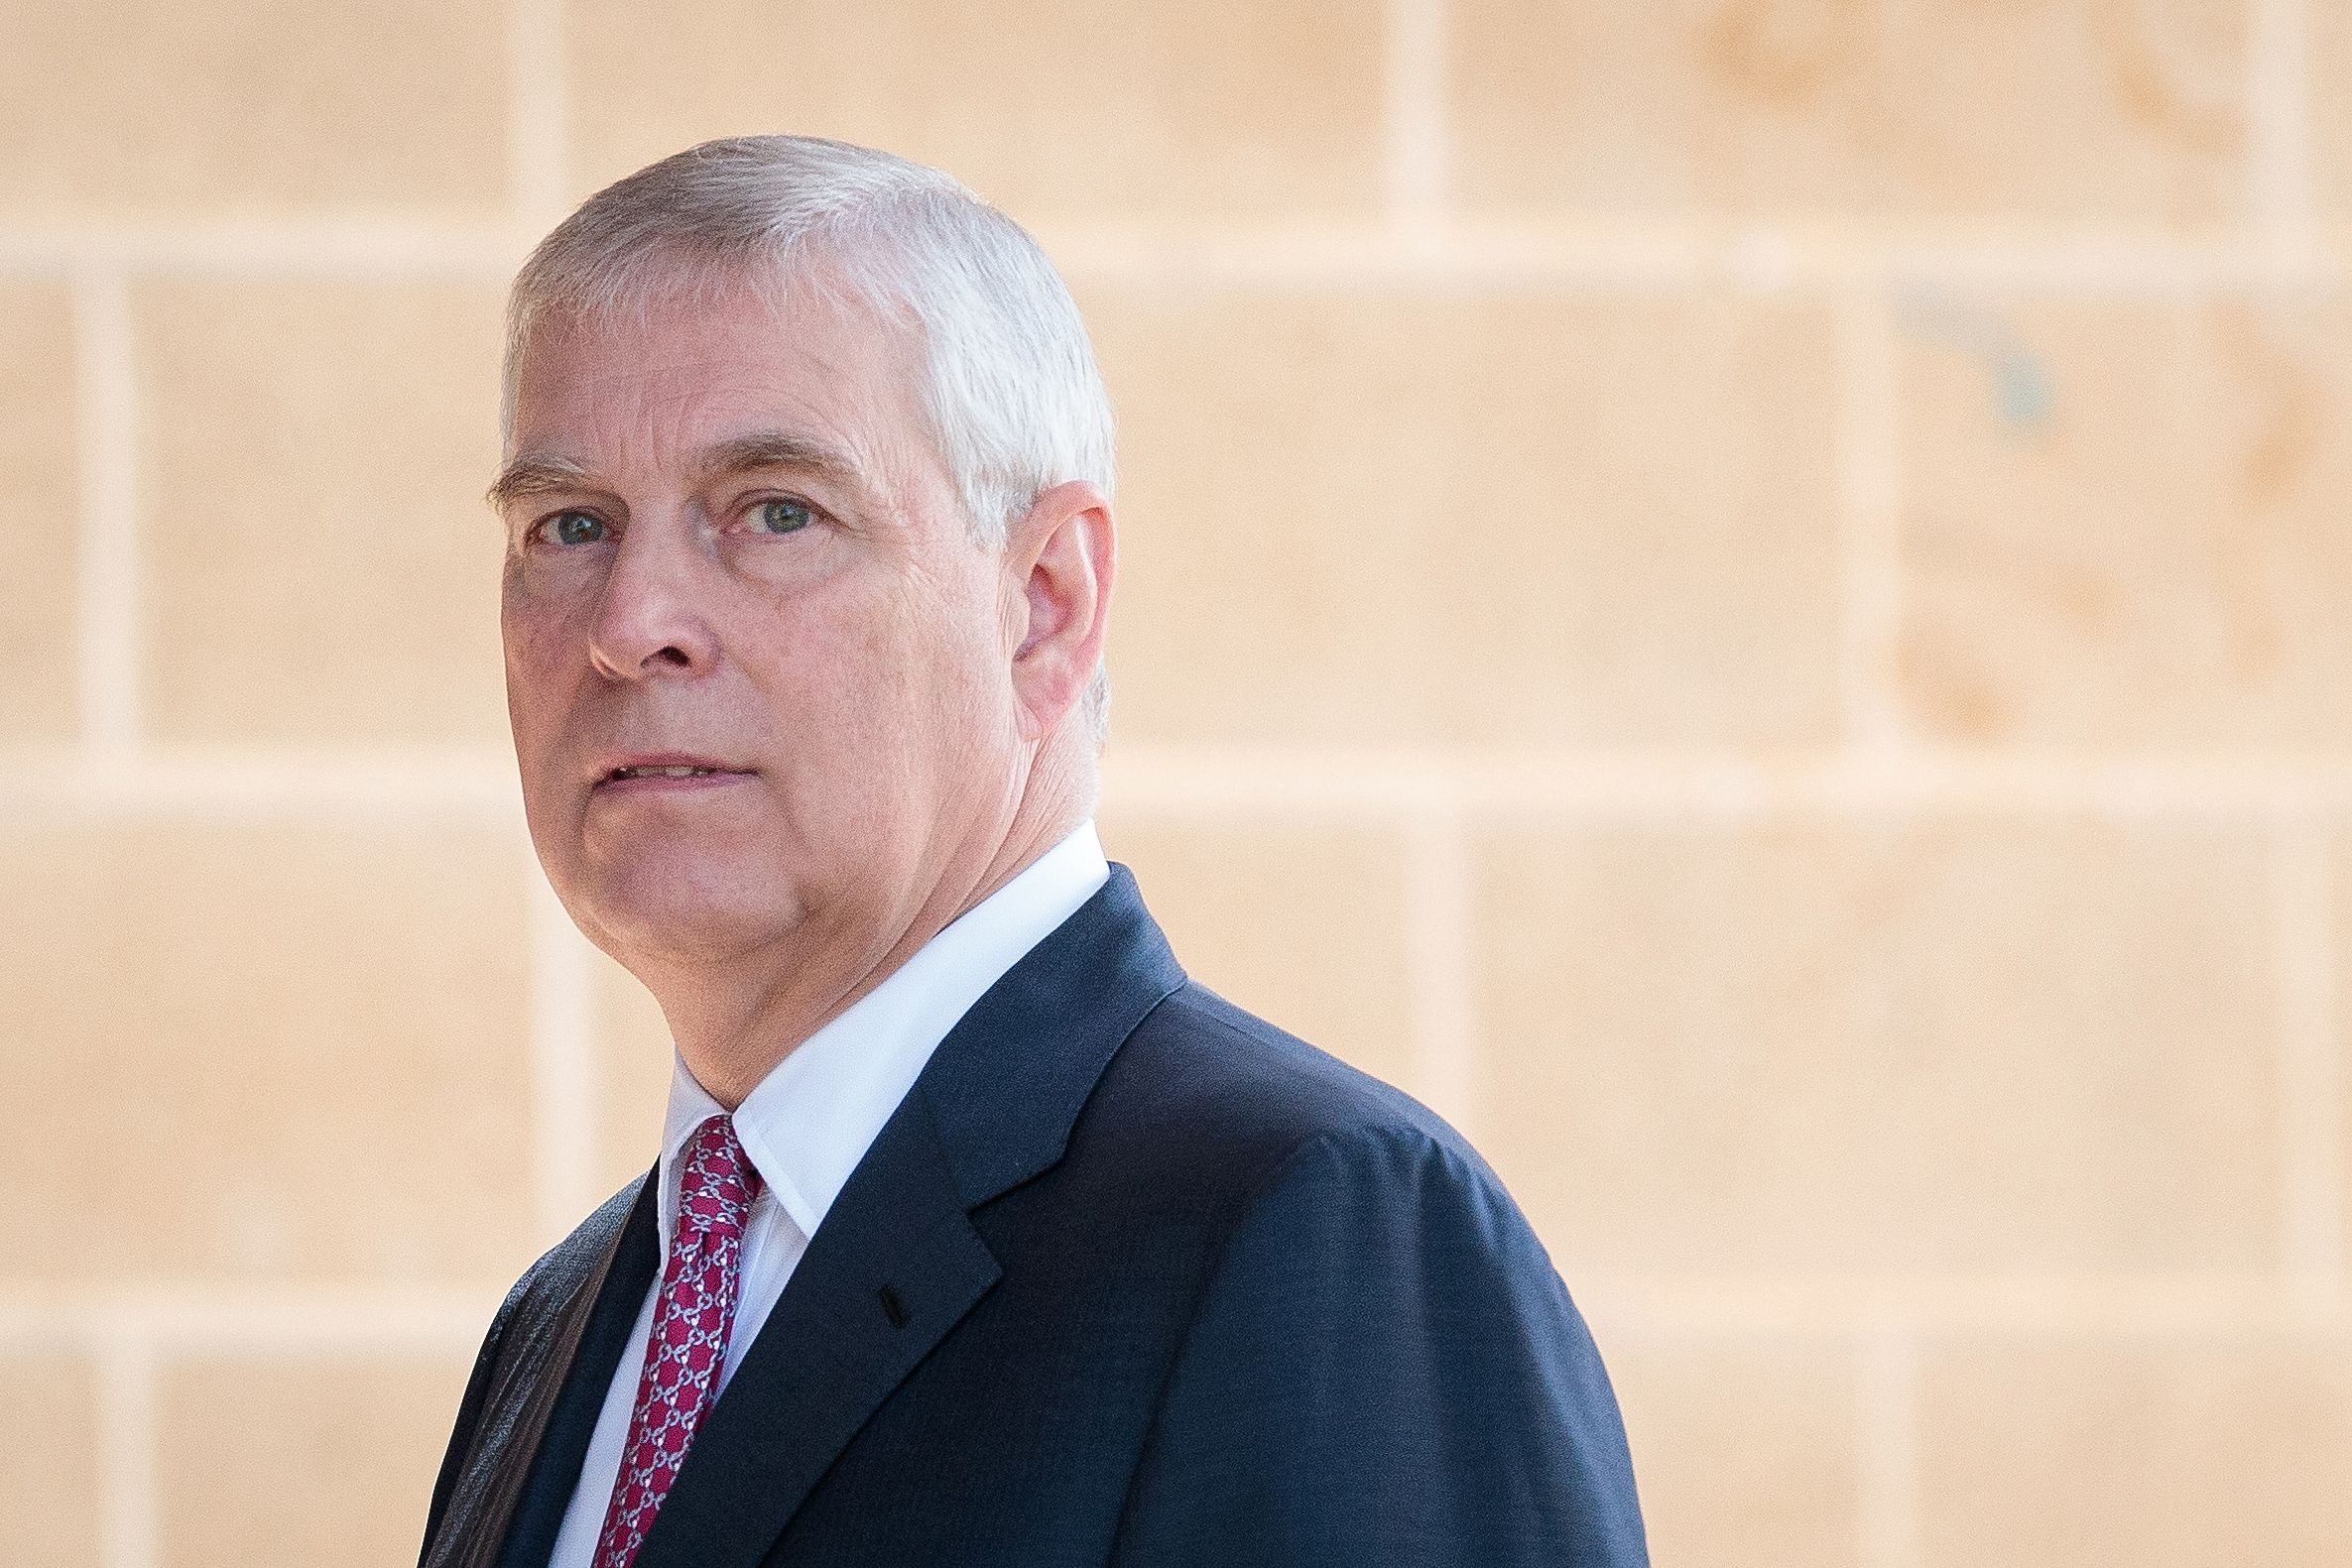 Britain's Prince Andrew, Duke of York arriving at Murdoch University in Perth, Western Australia, Australia, 02 October 2019. According to reports, Prince Andrew is in Australia on a working visit.Britain's Prince Andrew in Australia, Perth - 02 Oct 2019